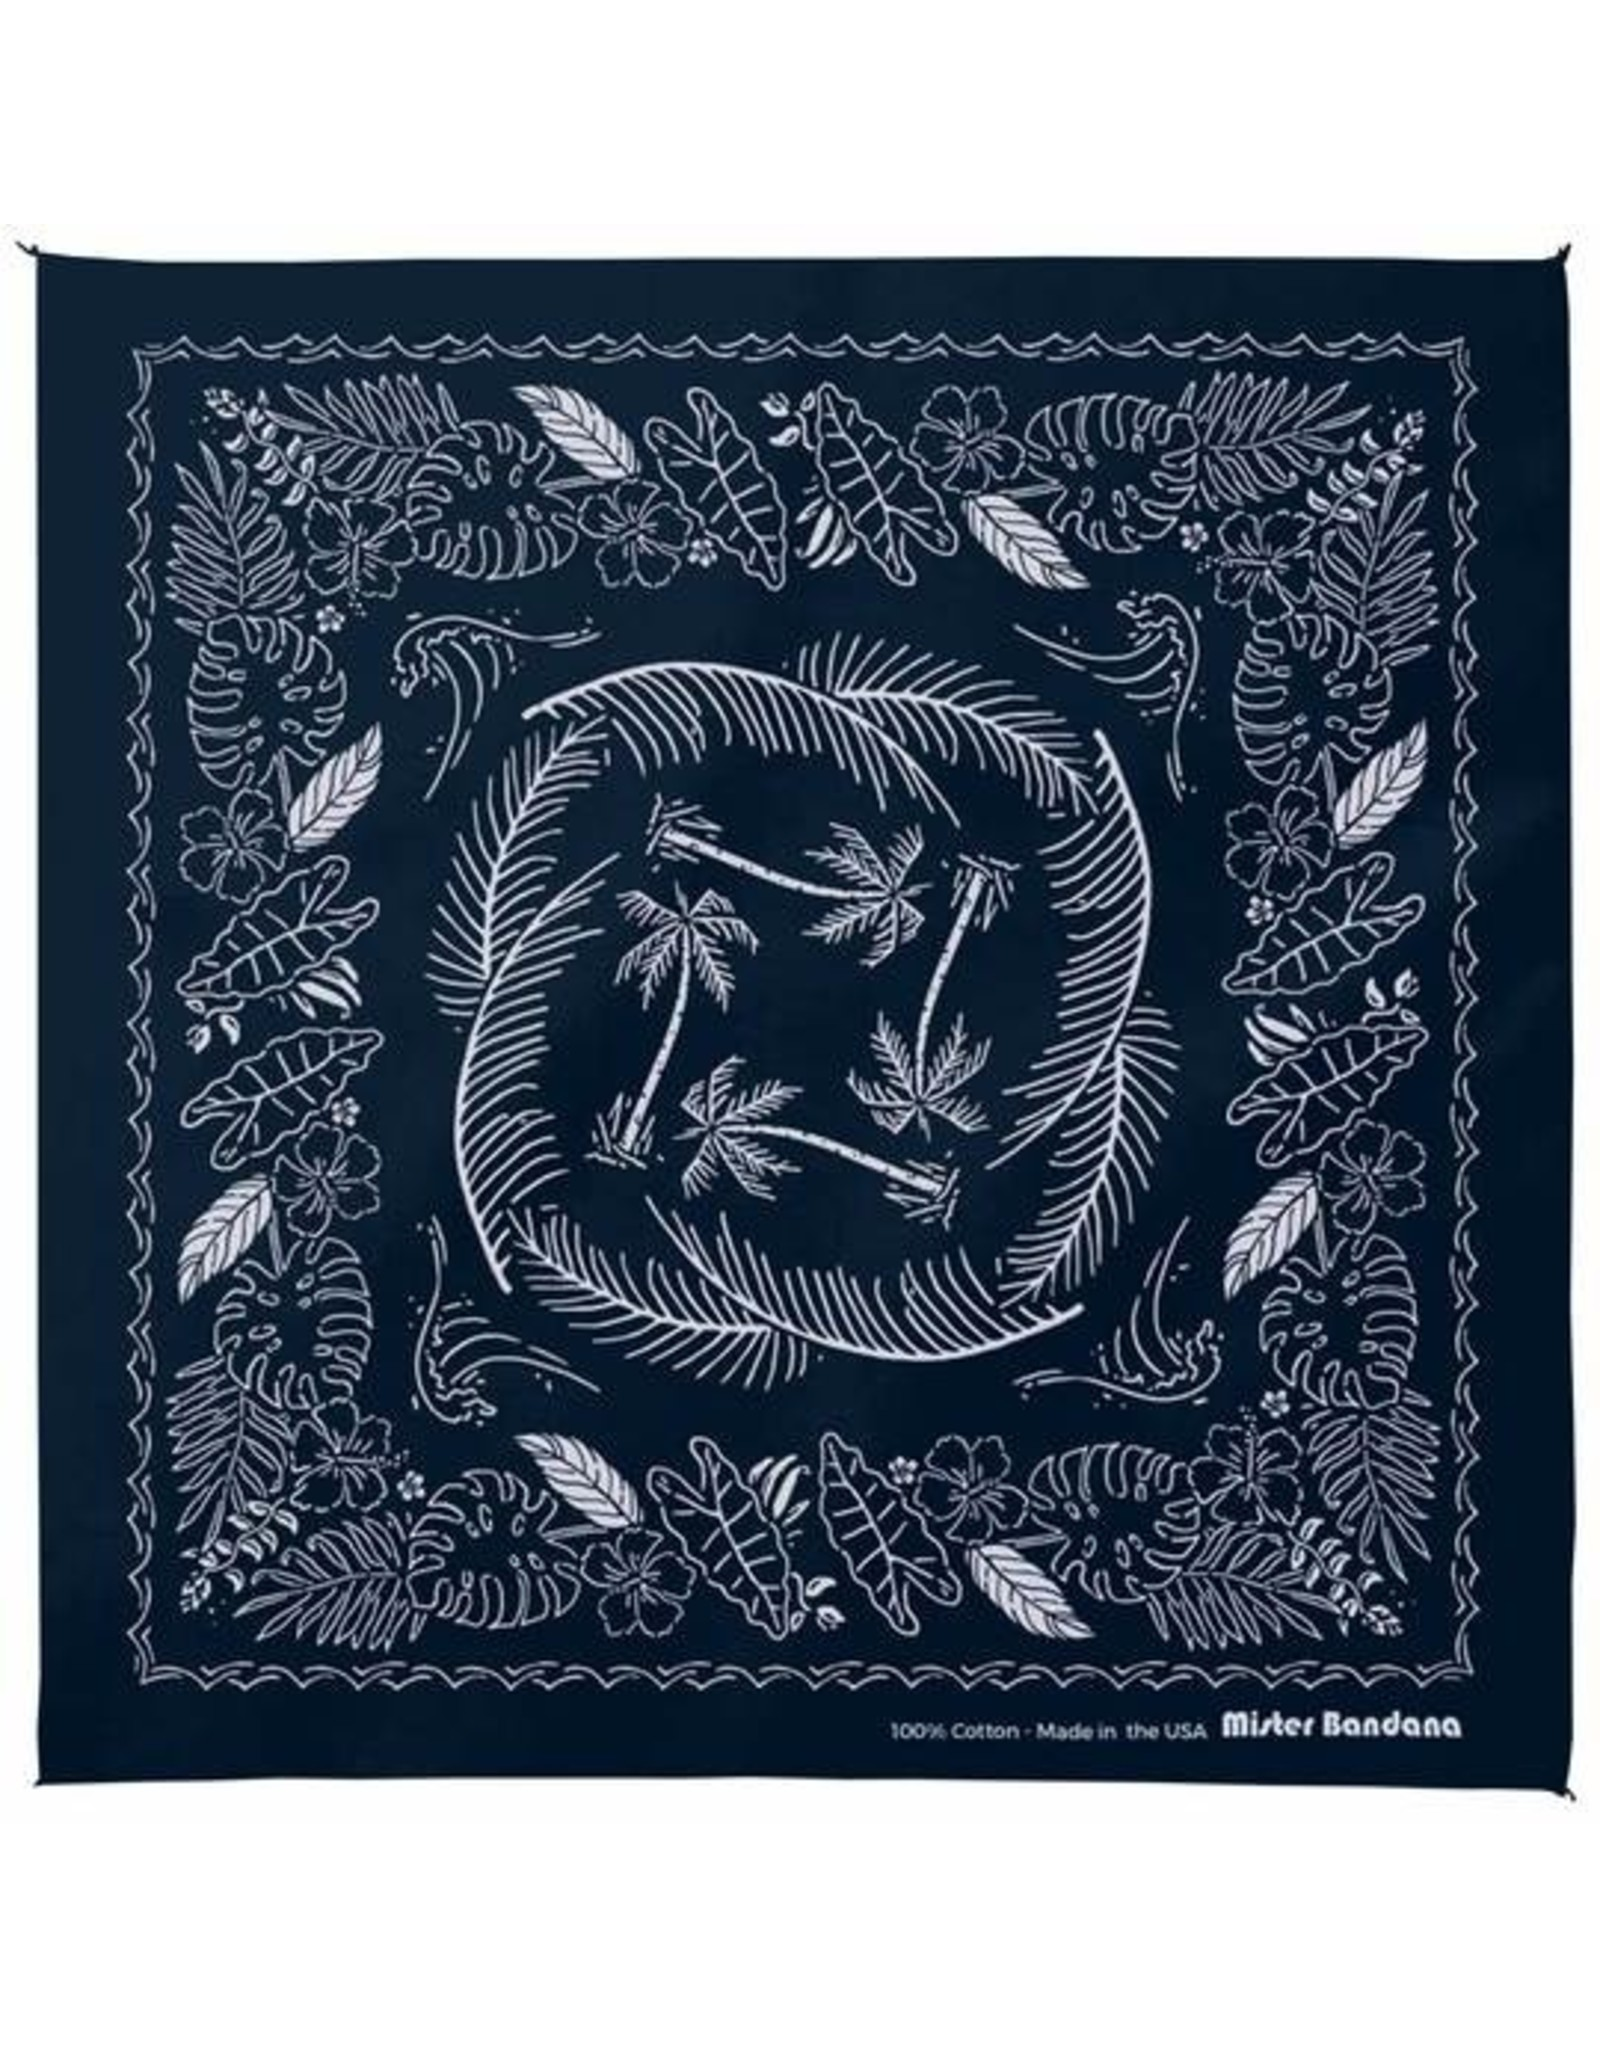 Mister Bandana Tahiti Nights Screen Printed Bandana in Navy